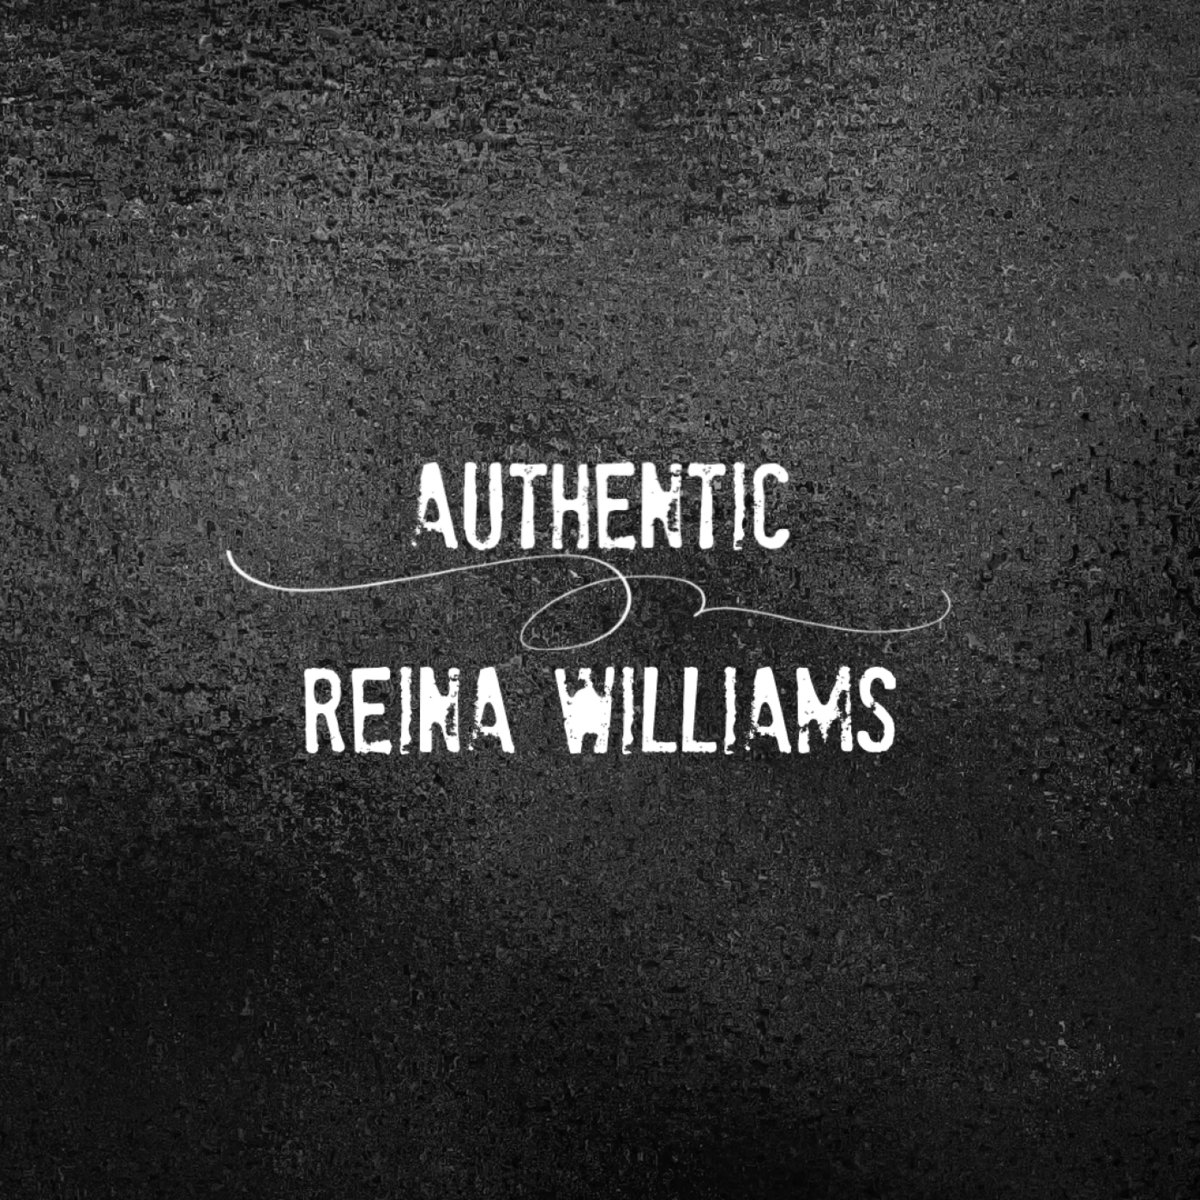 Authentic by Reina Williams